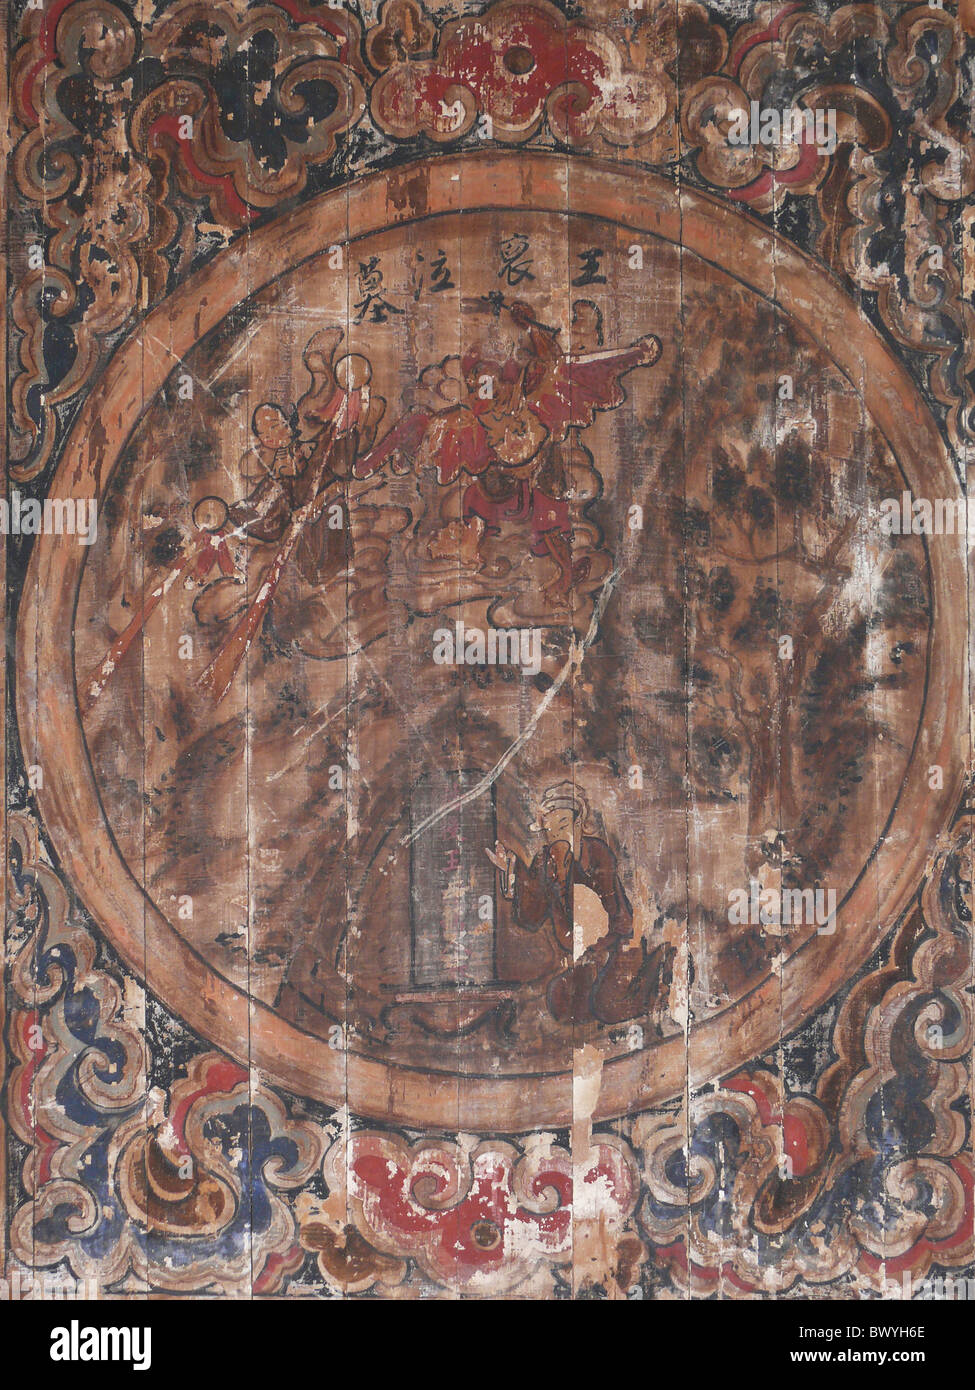 Ancient painting on old furniture depicting classical myth, Fubao Ancient Town, Luzhou, Sichuan Province, China - Stock Image